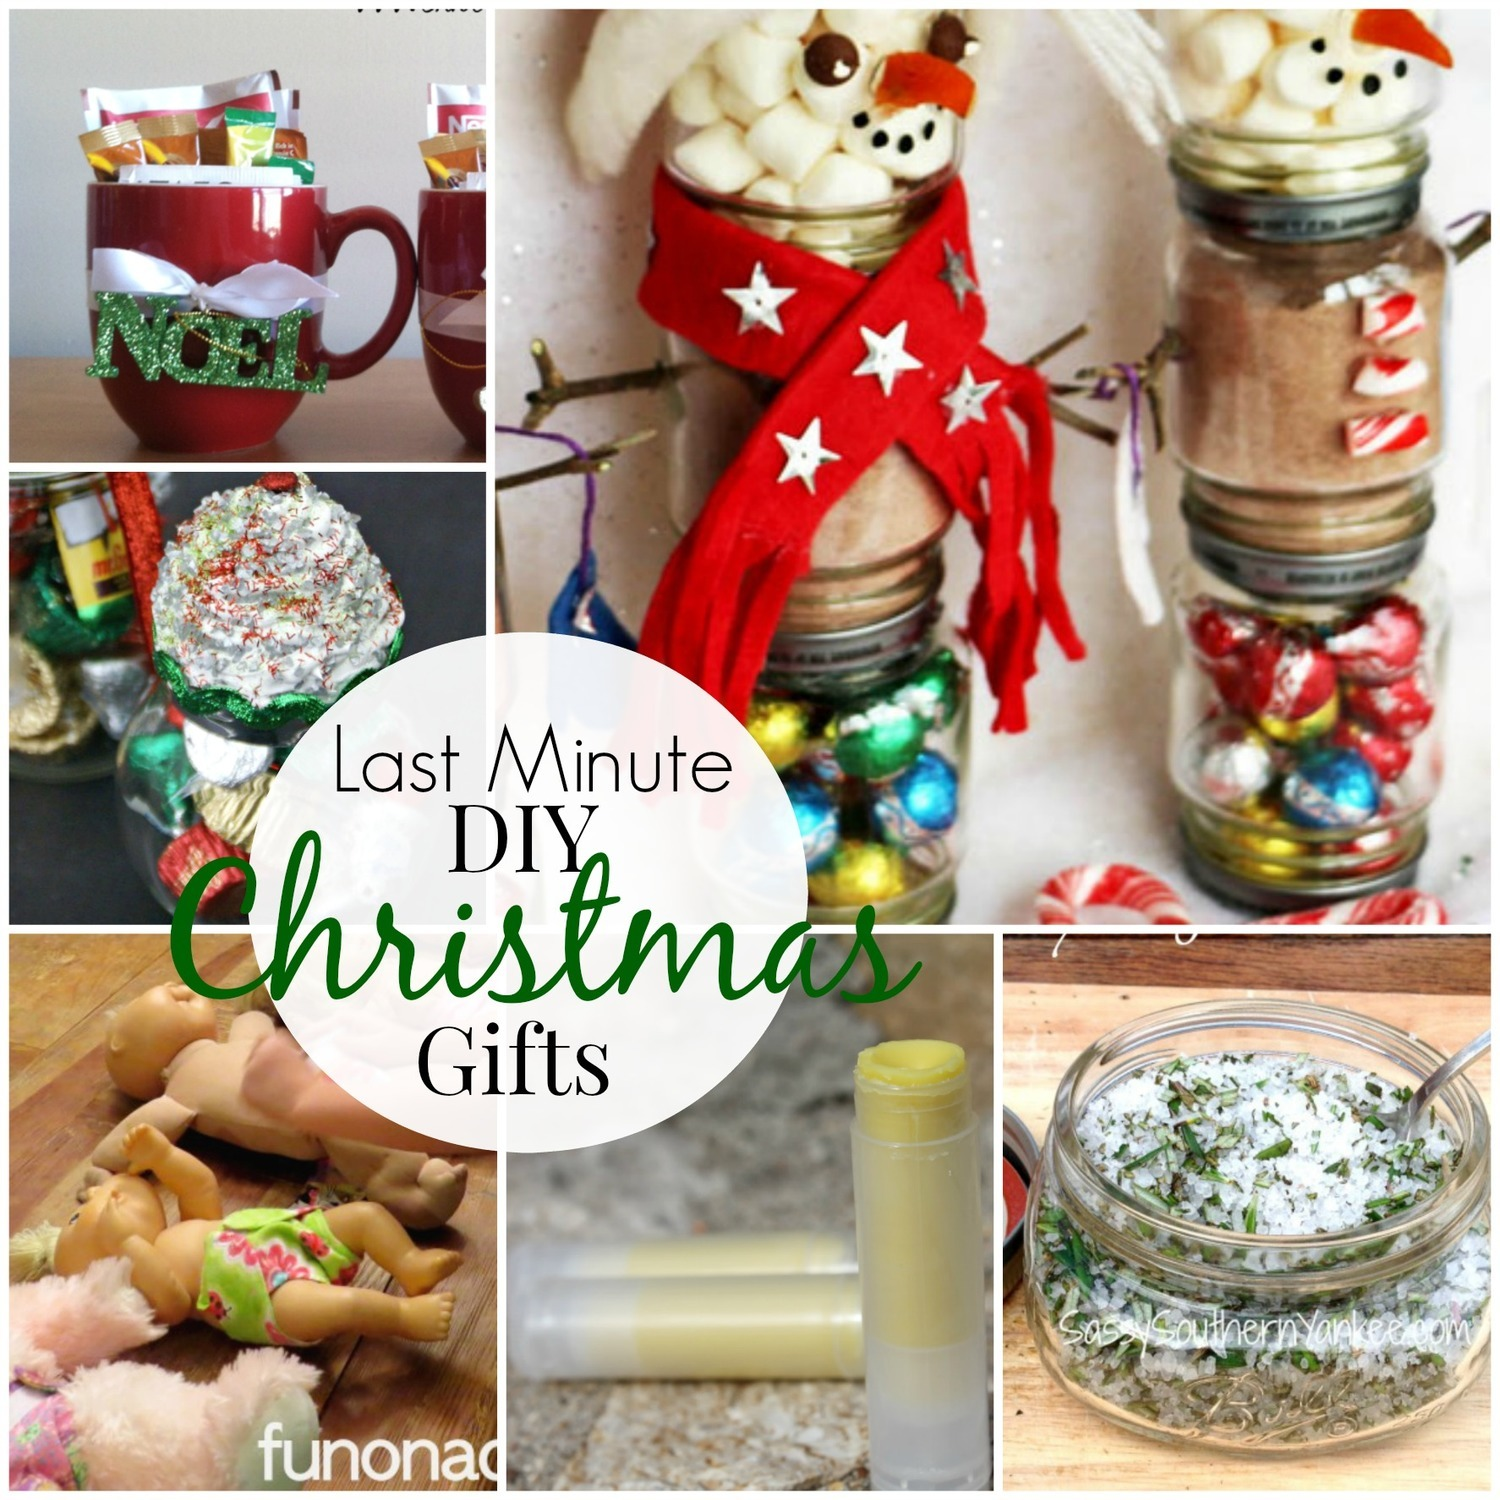 Last Minute DIY Christmas Gifts Roundup | The Frugal Farm Wife